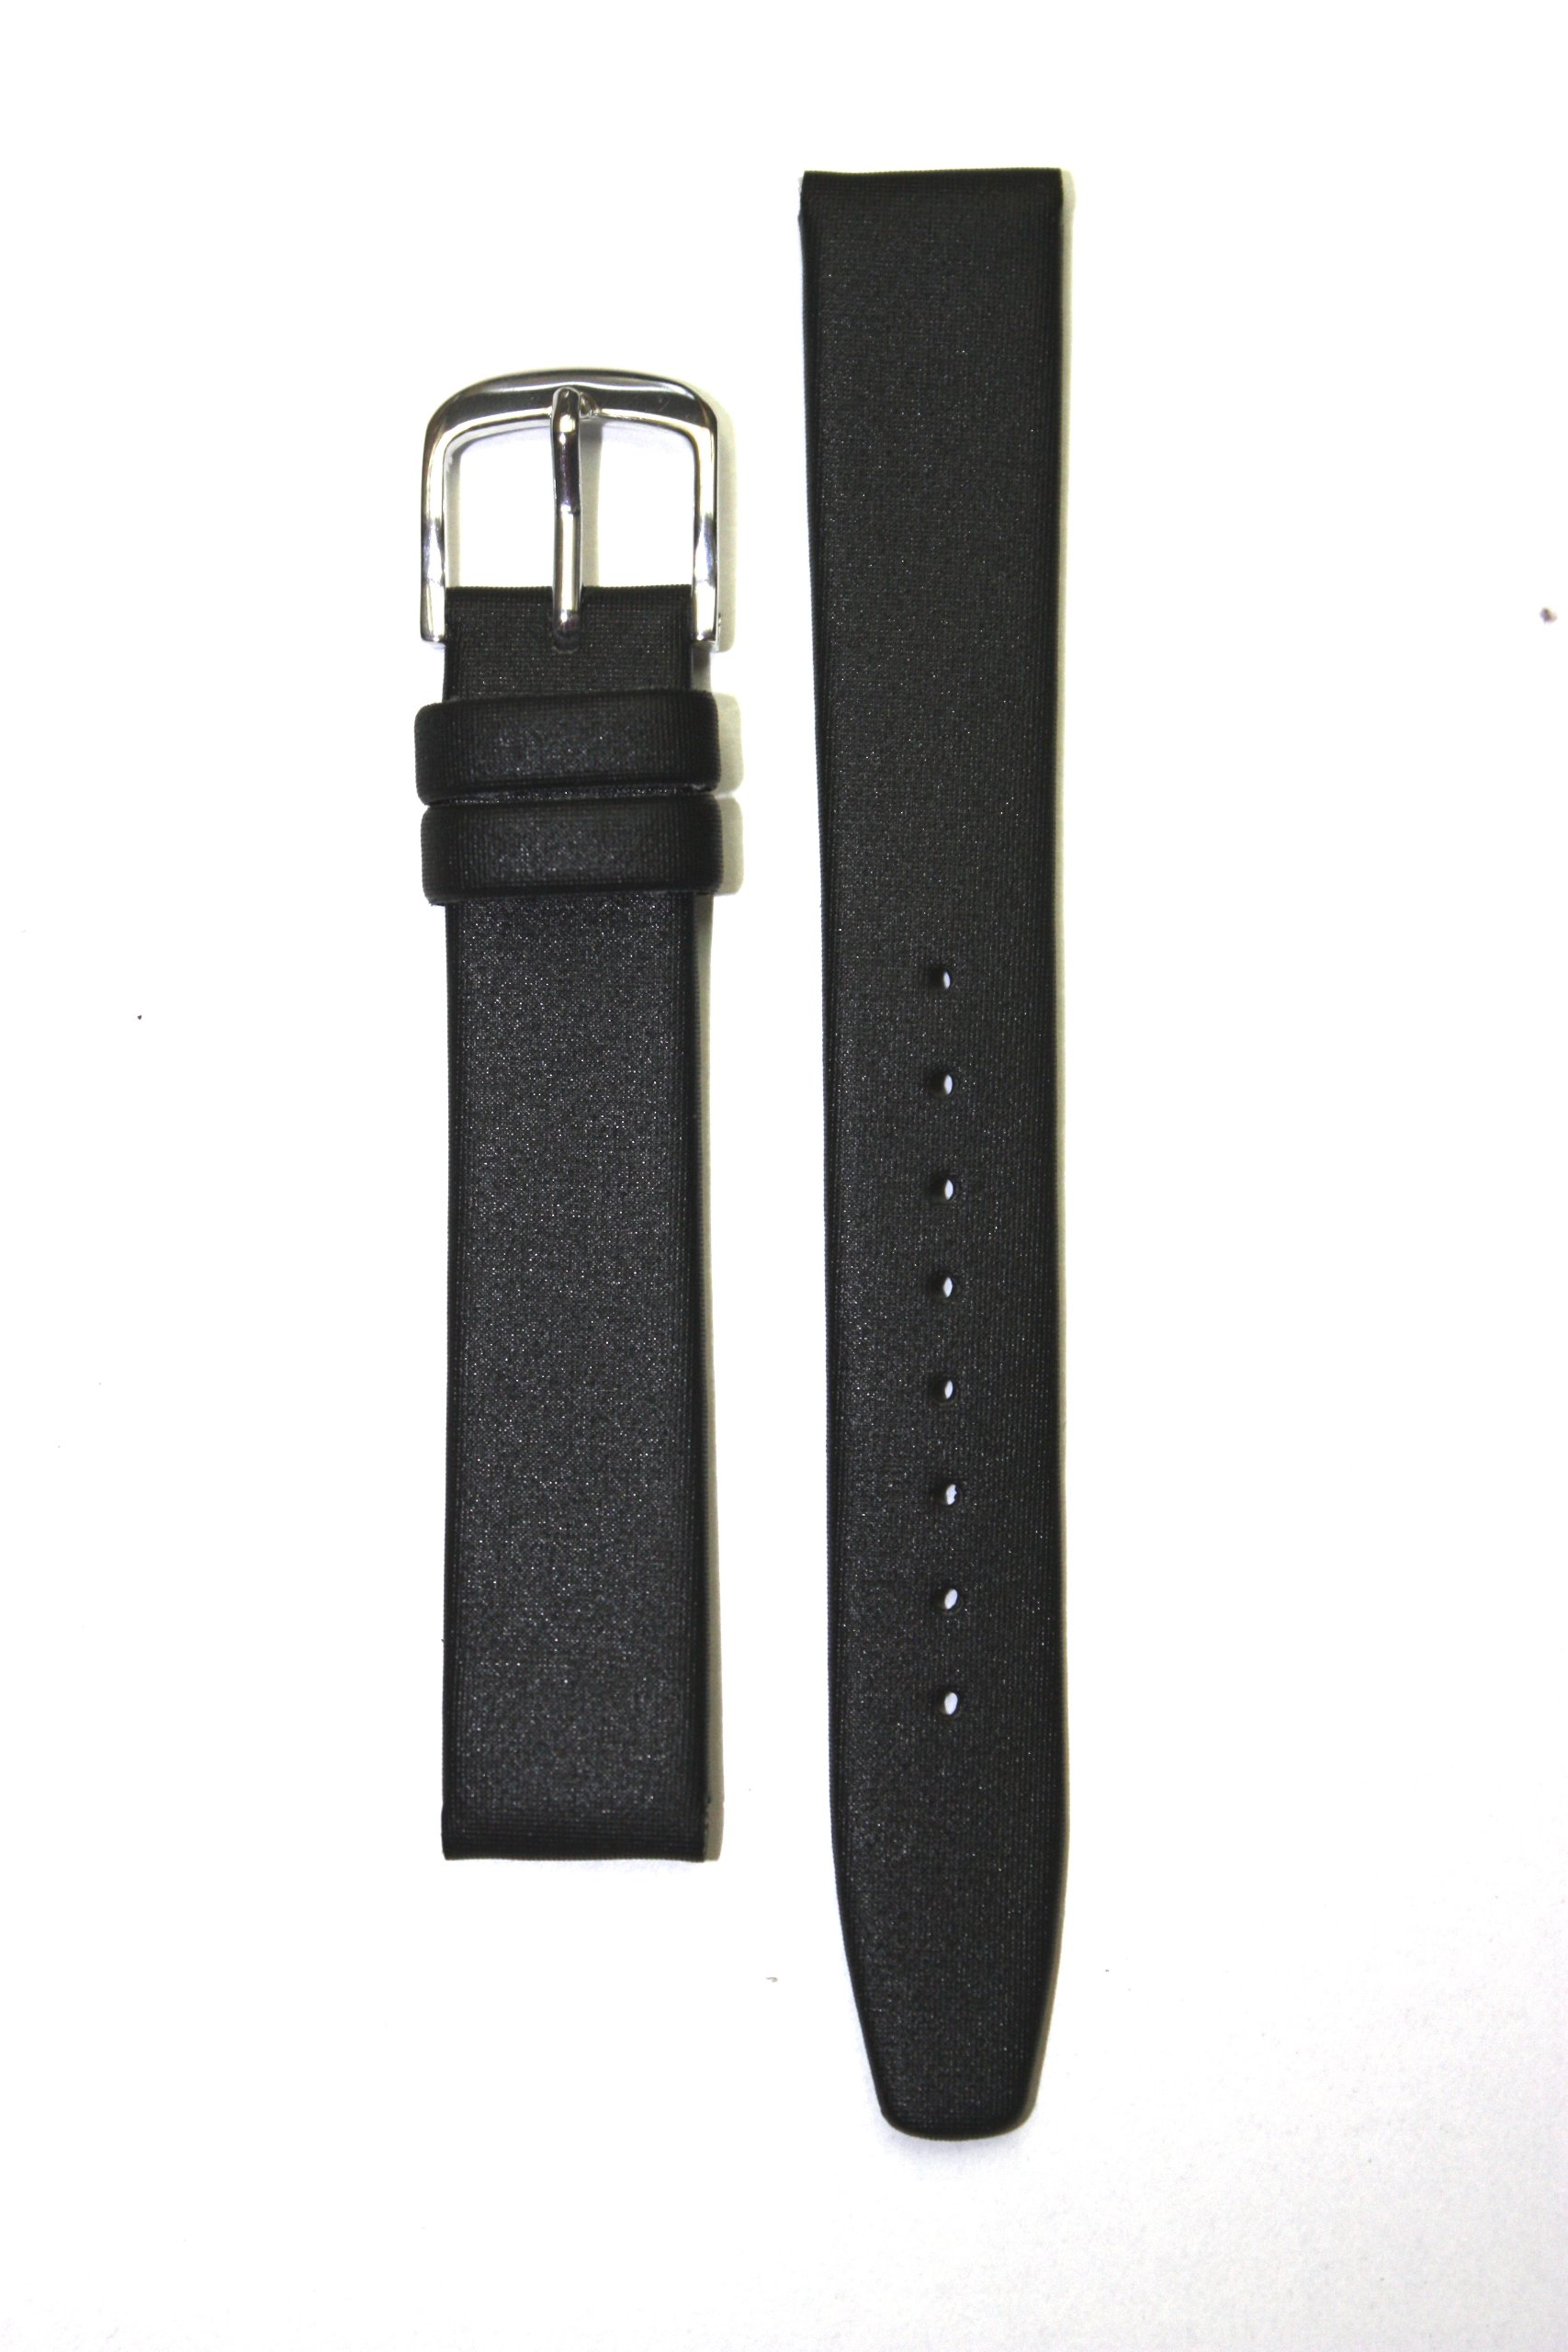 Locman Style 15mm Black Satin Watchband with Chisel Point Ends, S/S Buckle, and Leather Lining